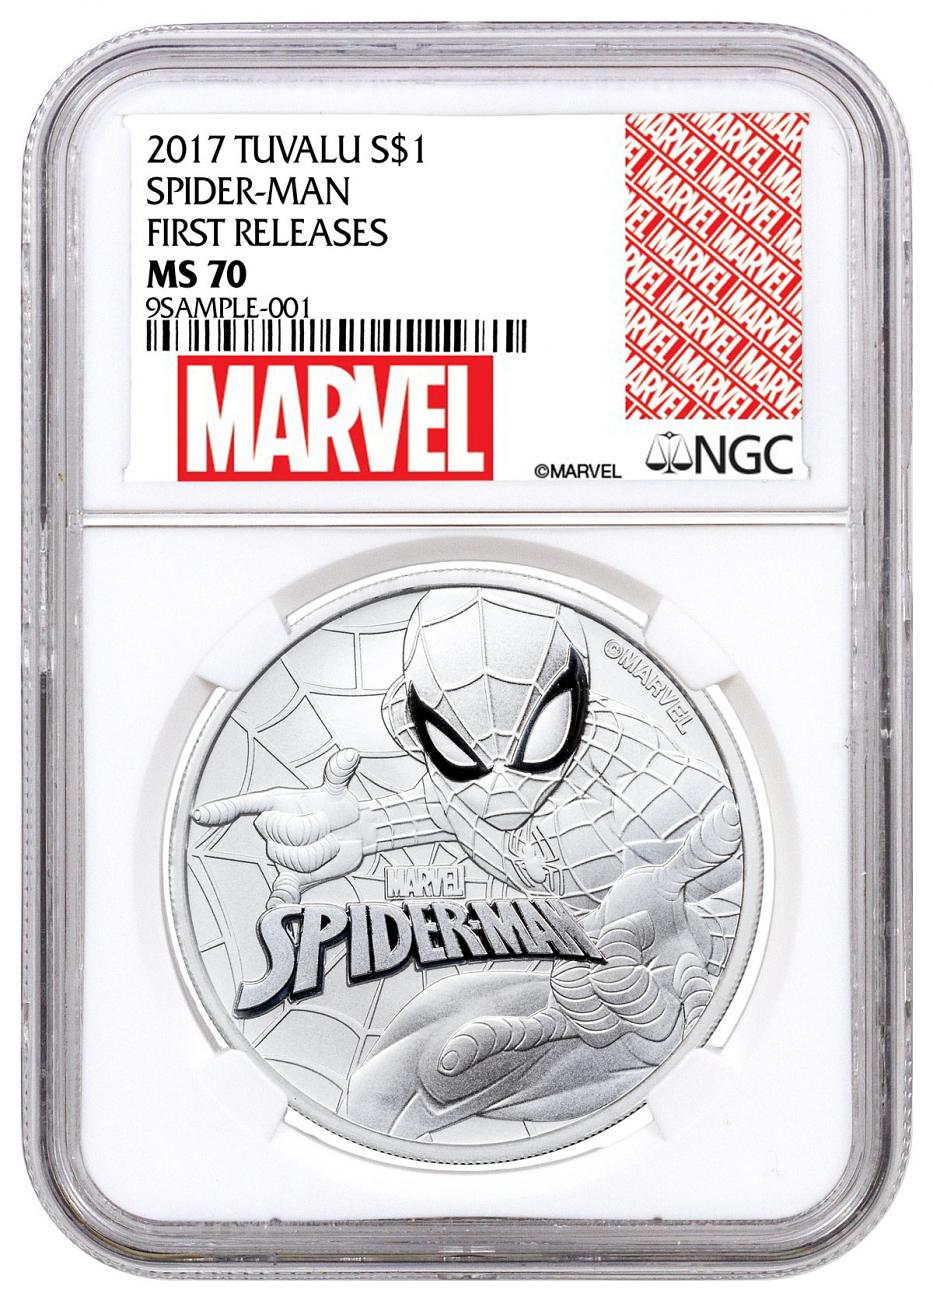 2017 Tuvalu Spider-Man 1 oz Silver Marvel Series $1 Coin NGC MS70 FR Exclusive Marvel Label